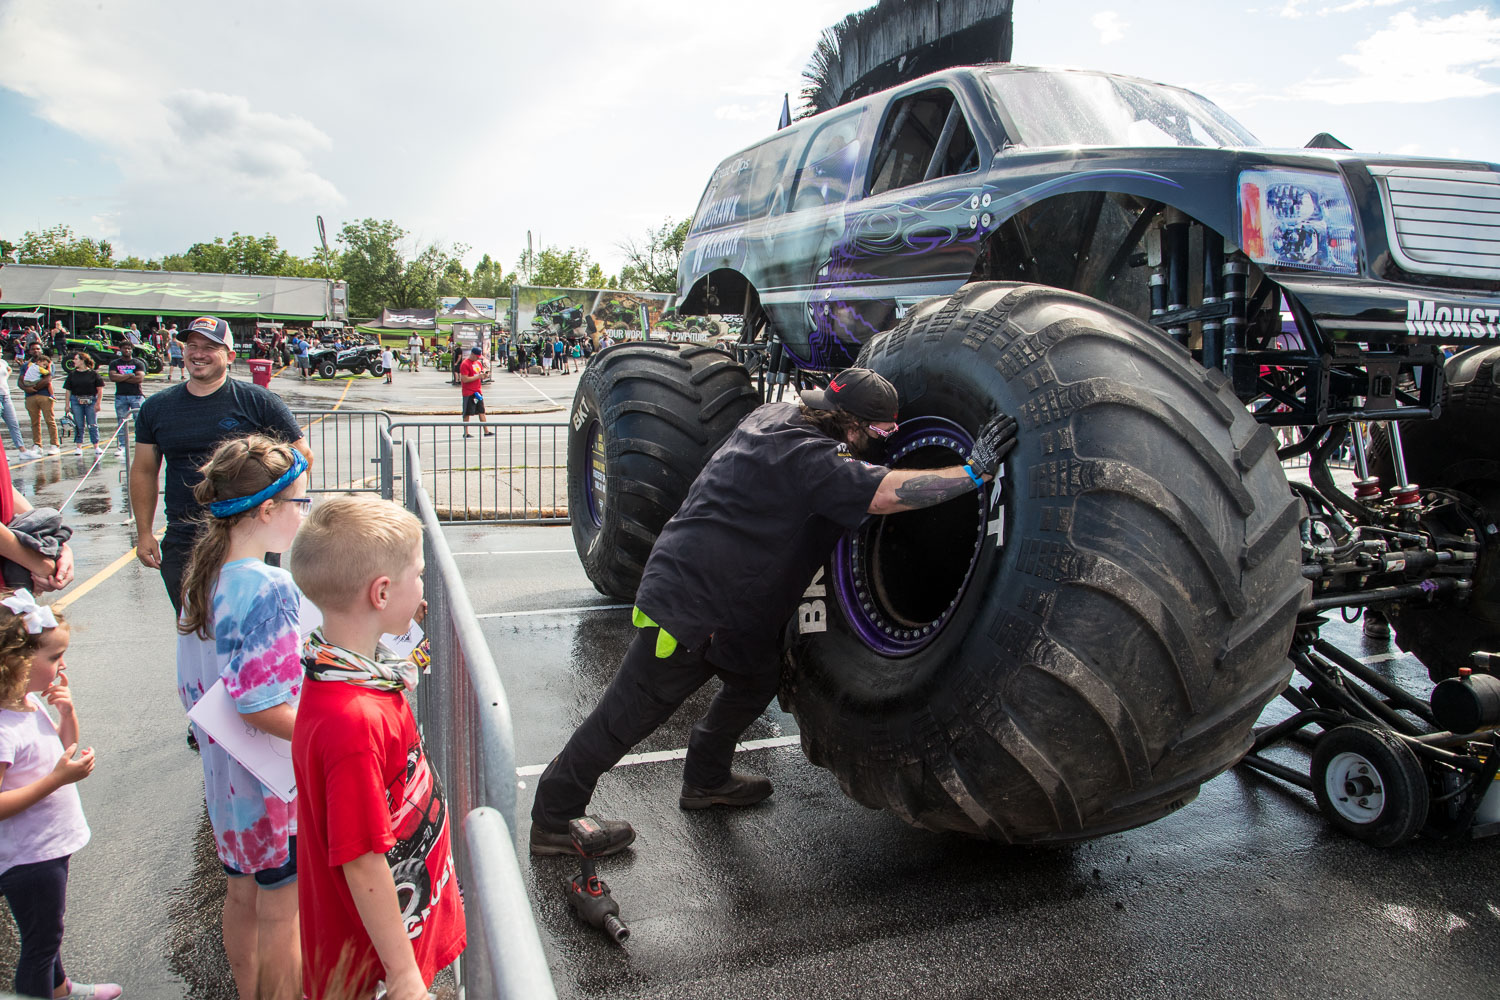 Fans watch as a pit crew demonstrates how to change a tire on the Great Clips Mohawk Warrior truck during the Monster Jam Pit Party prior to the main event at GEHA Field at Arrowhead on Saturday evening, June 26, 2021.